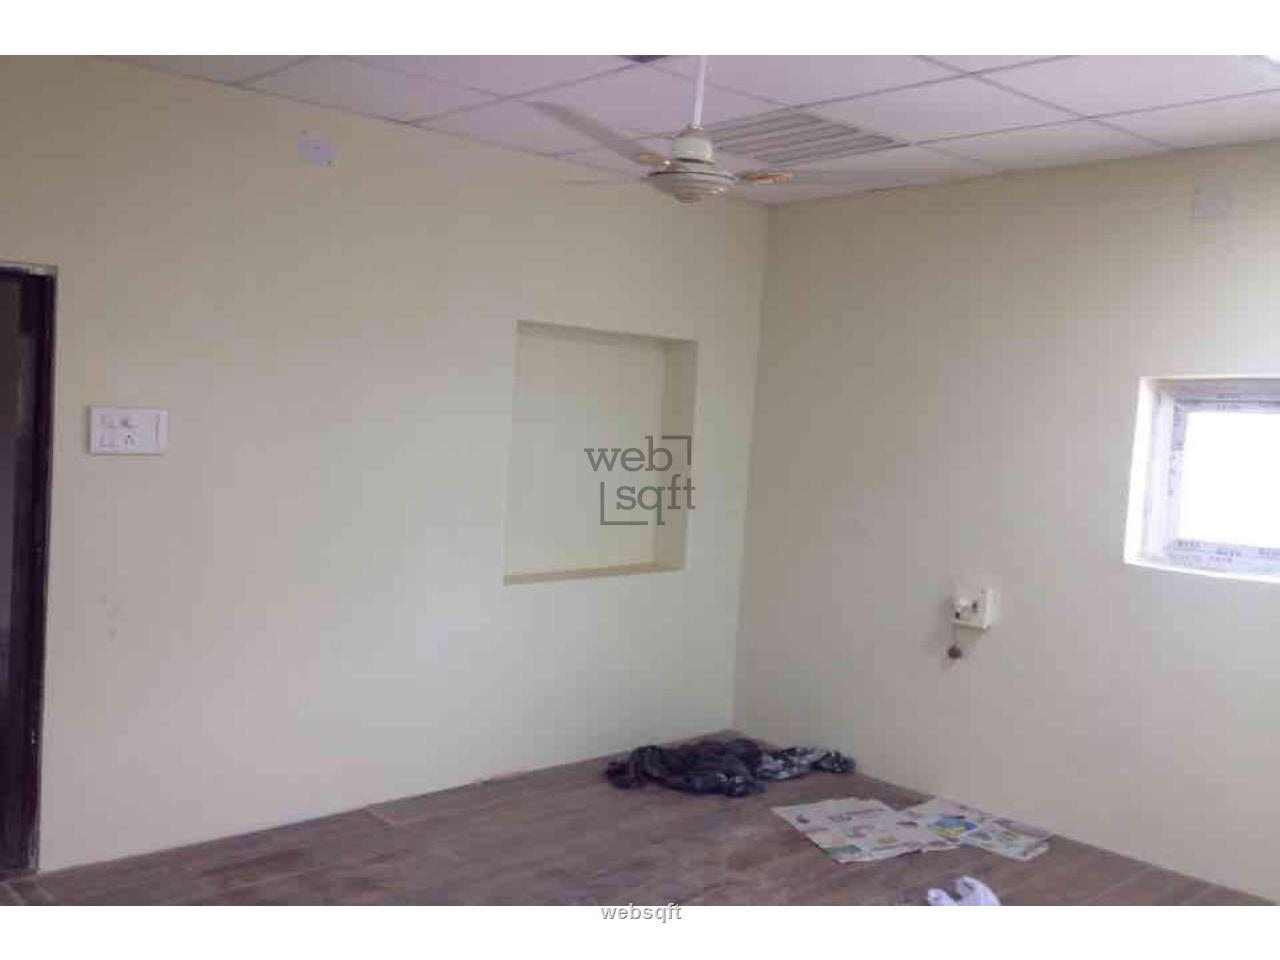 Websqft - Commercial Office Space - Property for Sale - in 2200Sq-ft/East Marredpally at Rs 6600000